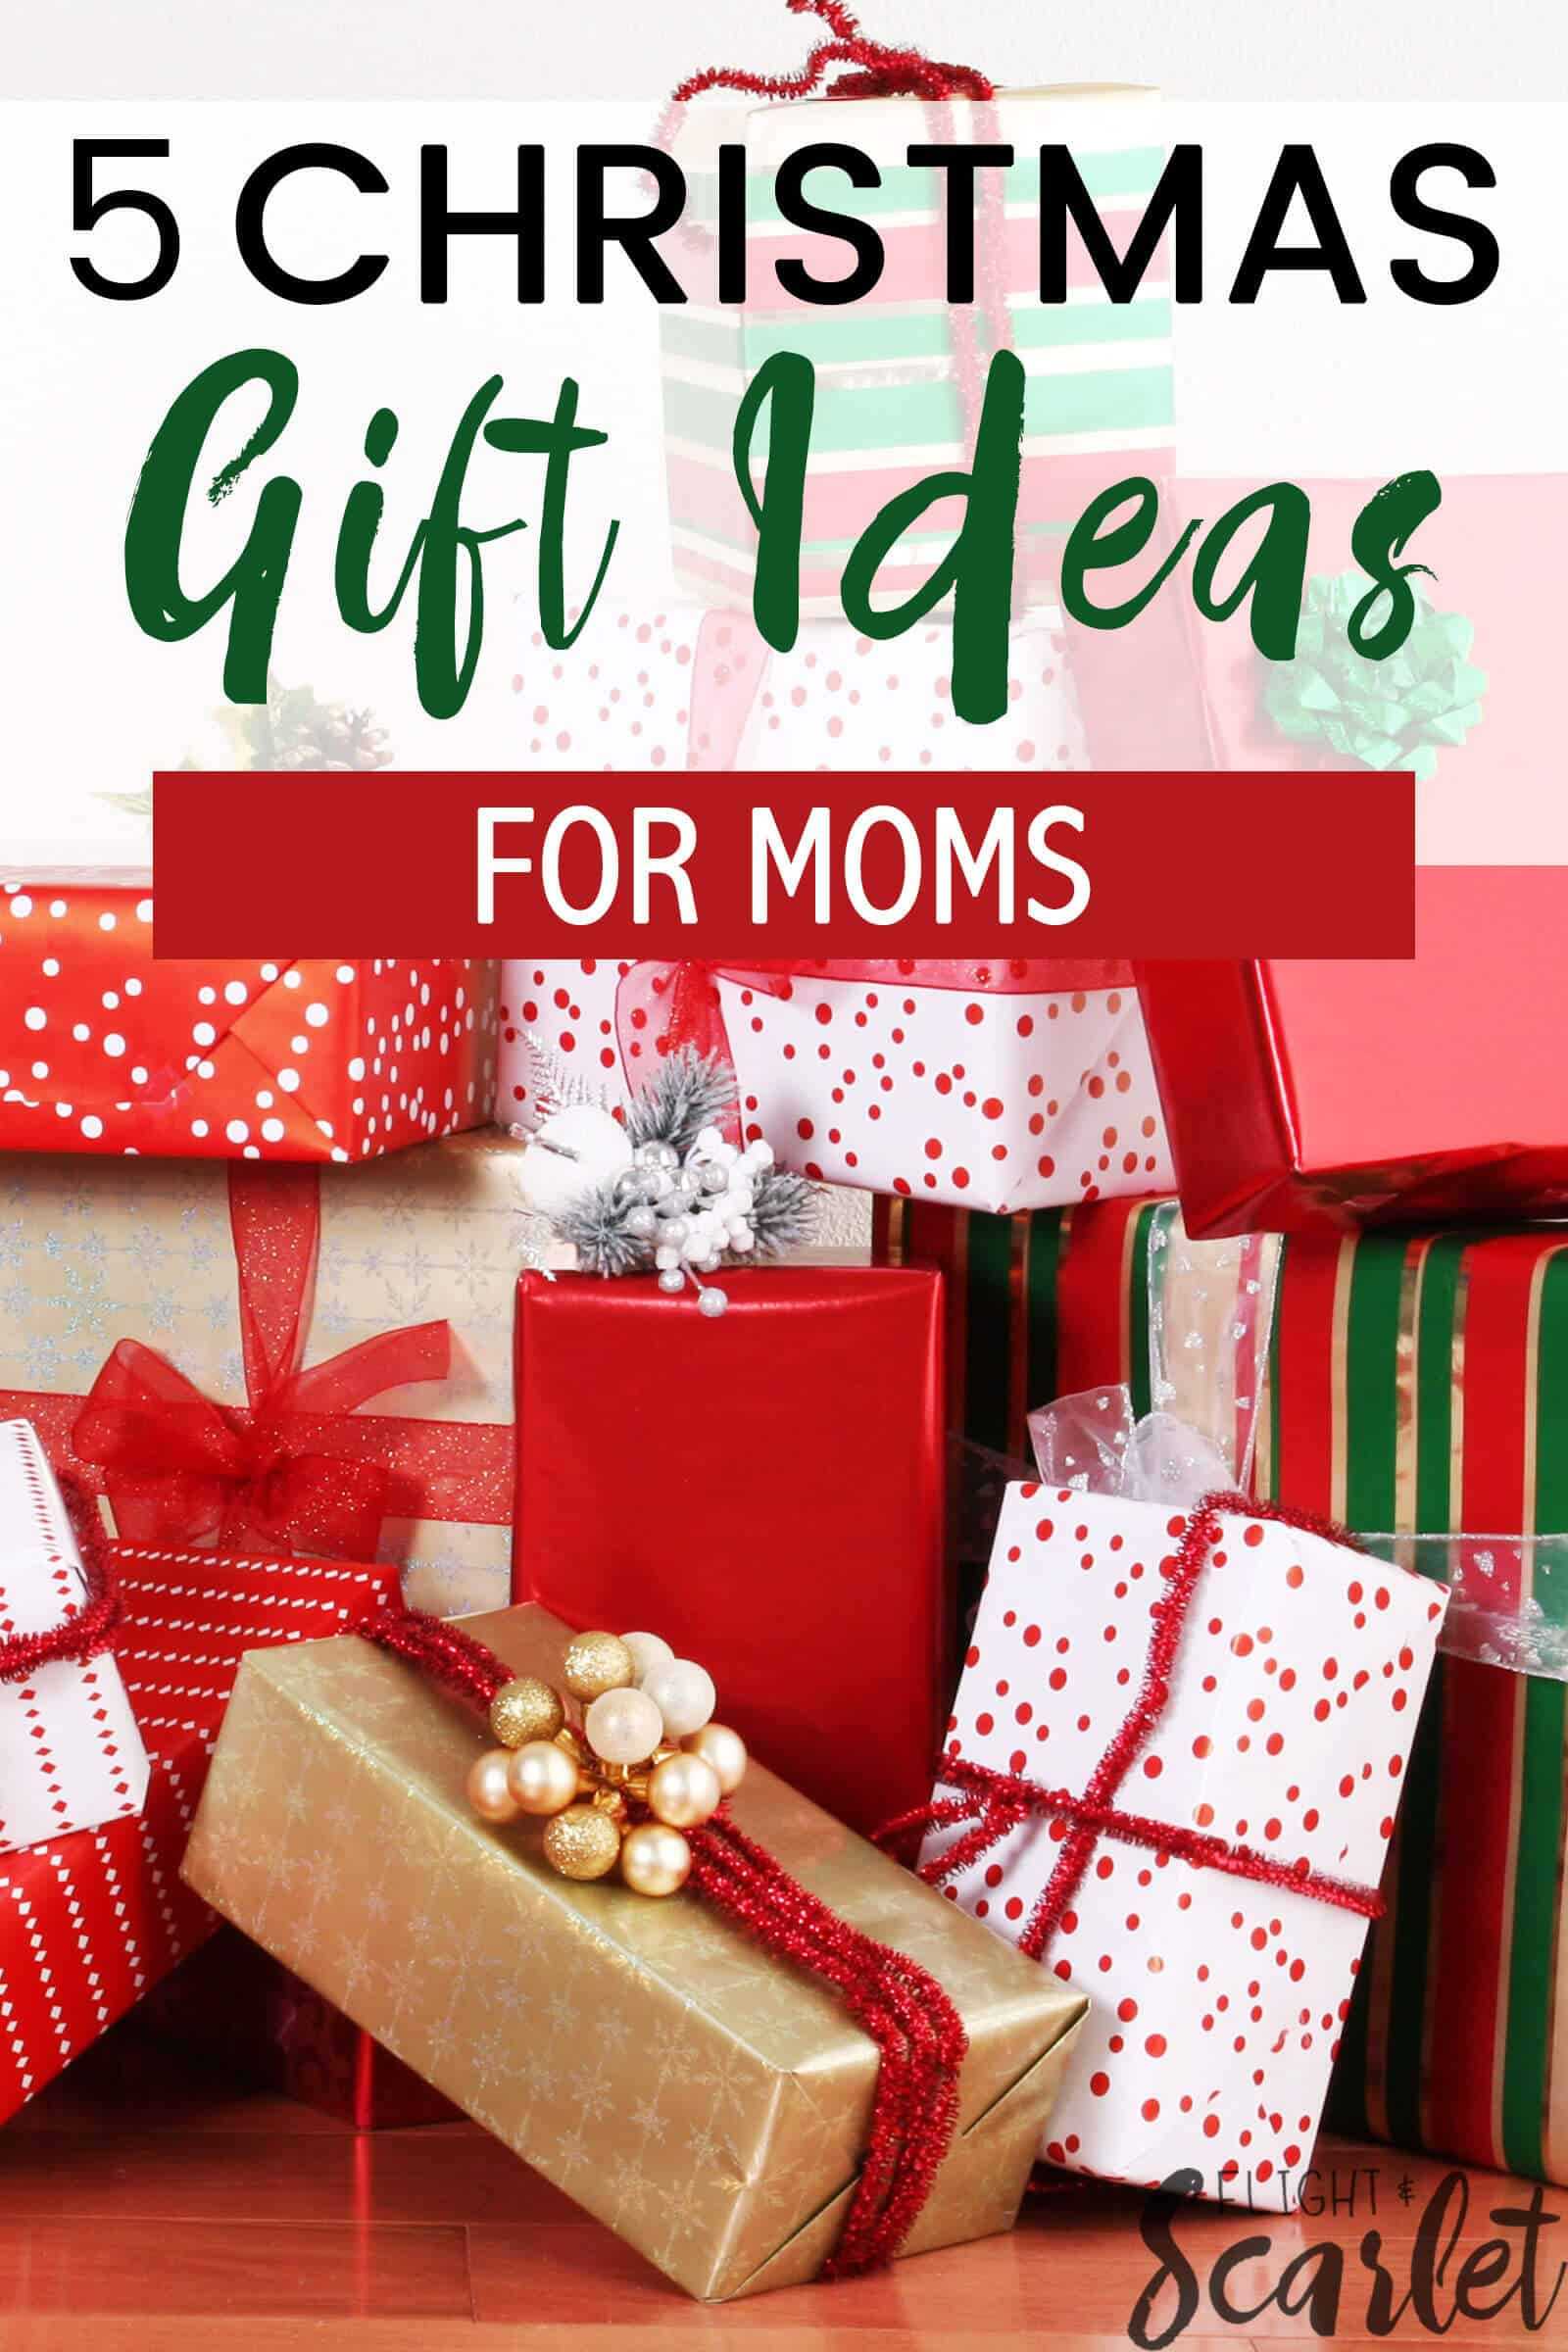 Best ideas about Christmas Gift Ideas Mom . Save or Pin 5 Bud Friendly Gift Ideas For Moms Flight & Scarlet Now.